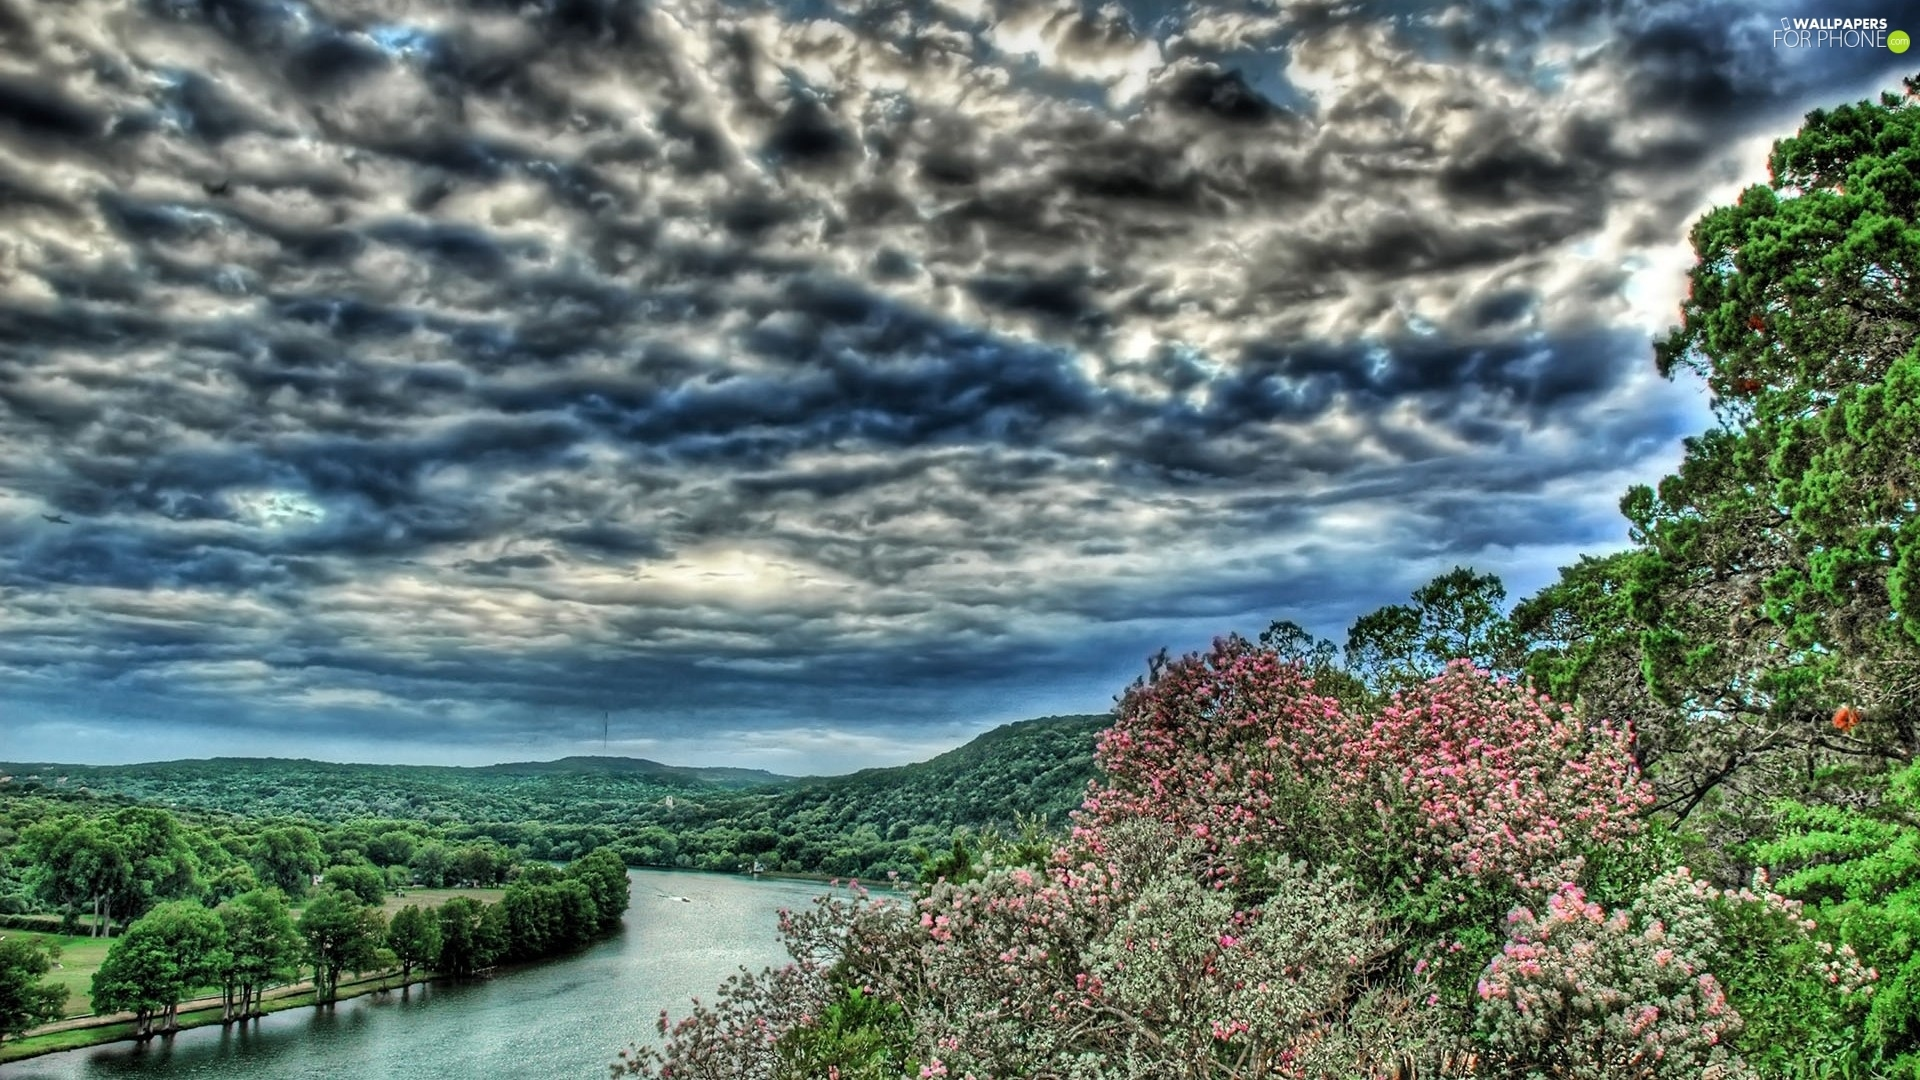 trees, viewes, storm, clouds, River